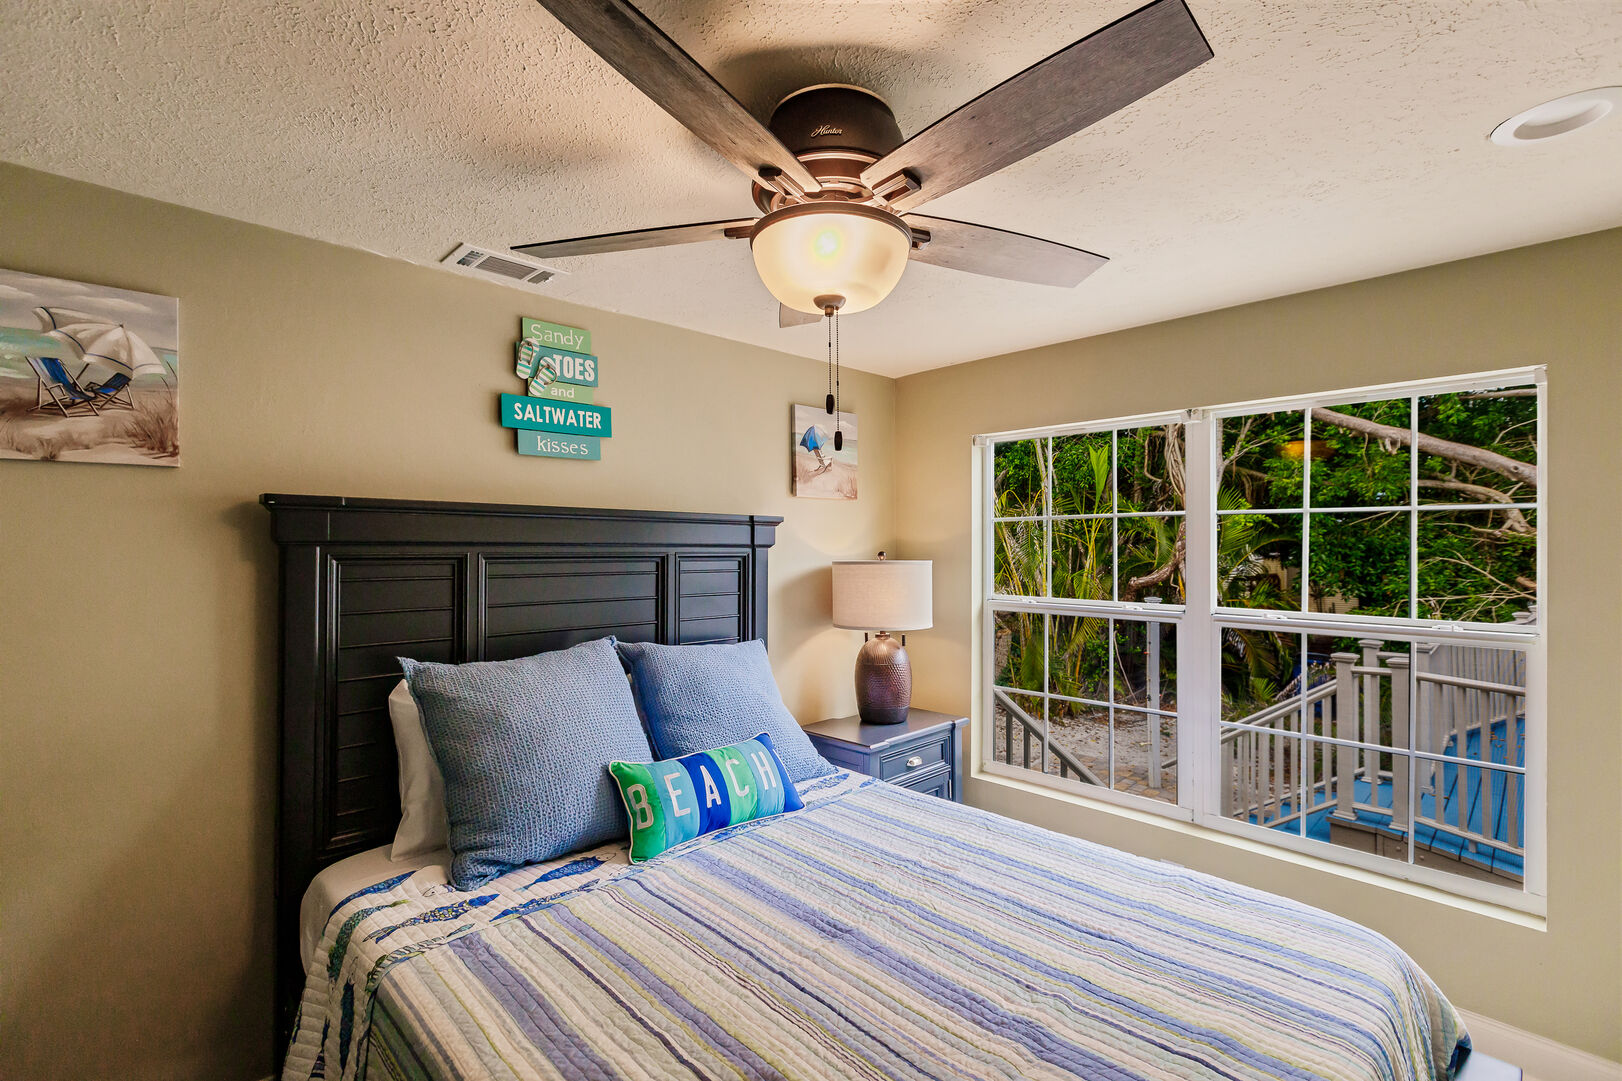 Bedroom with Nice View in Beach Paradise Private Beach House Rental in Florida